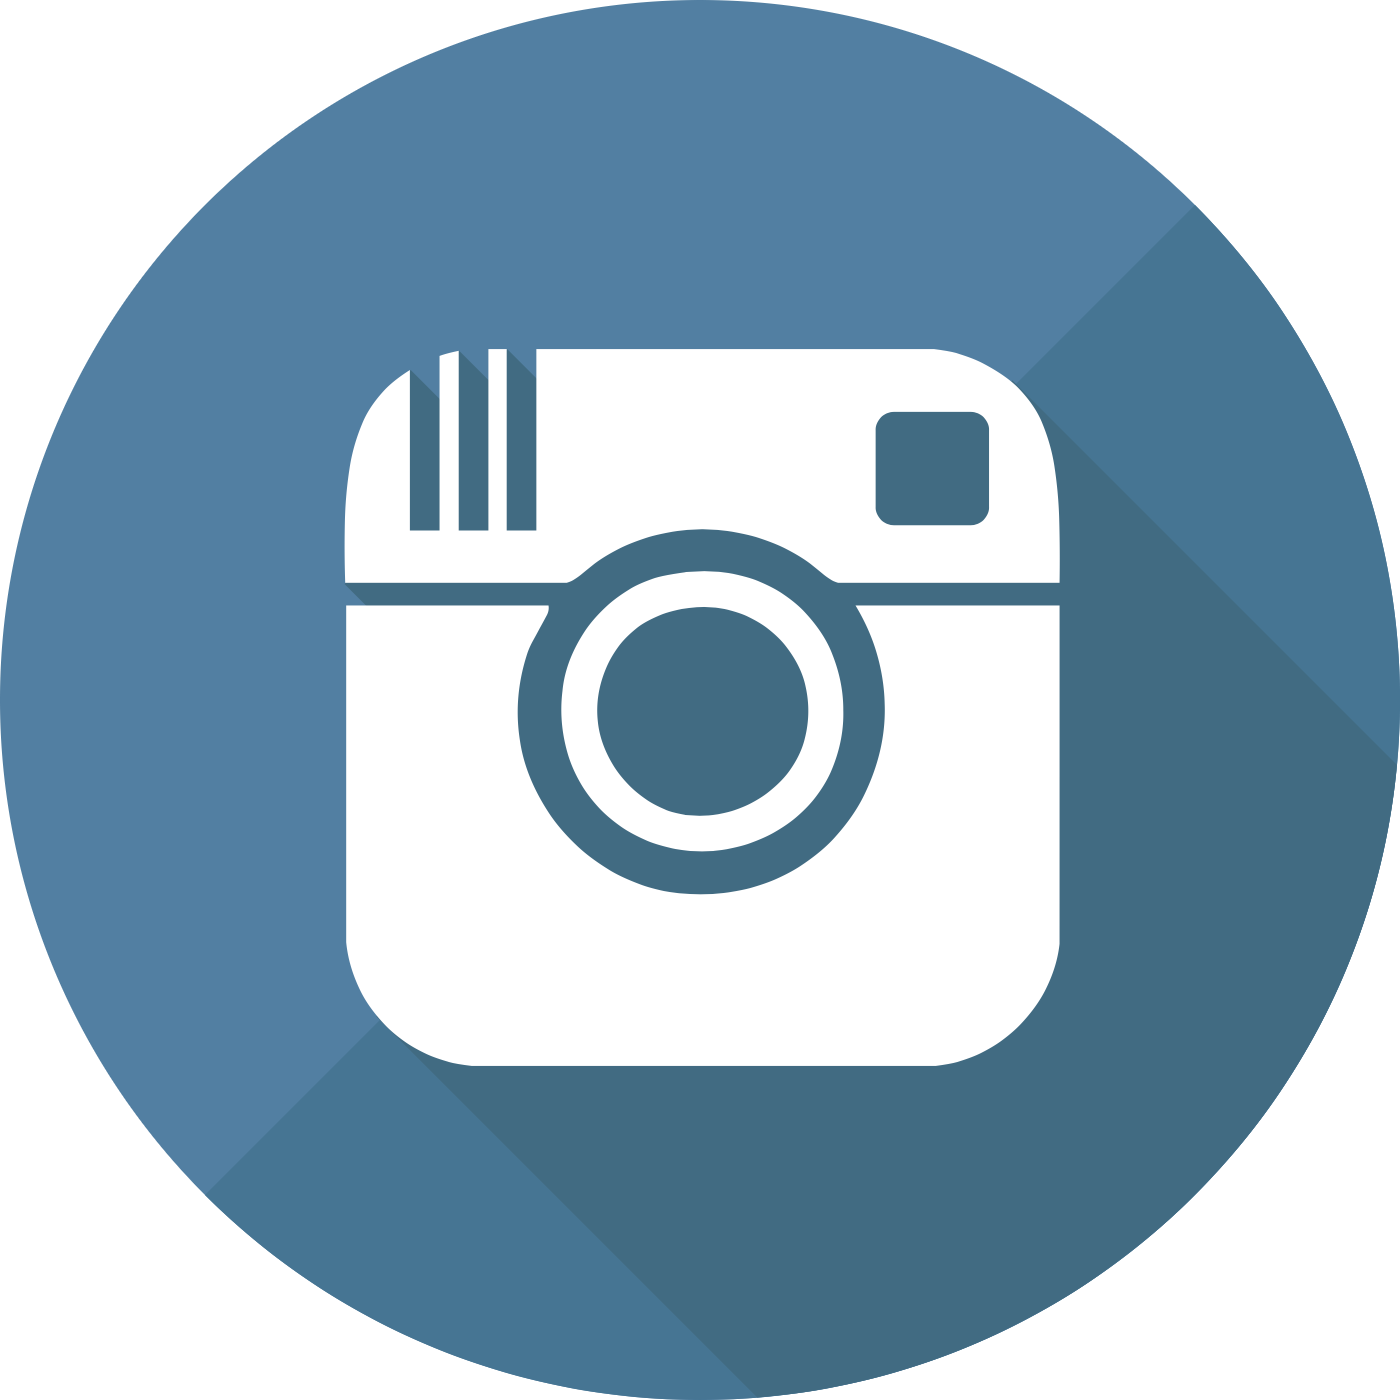 Circle instagram logo png. Mysterious galaxy computer icons